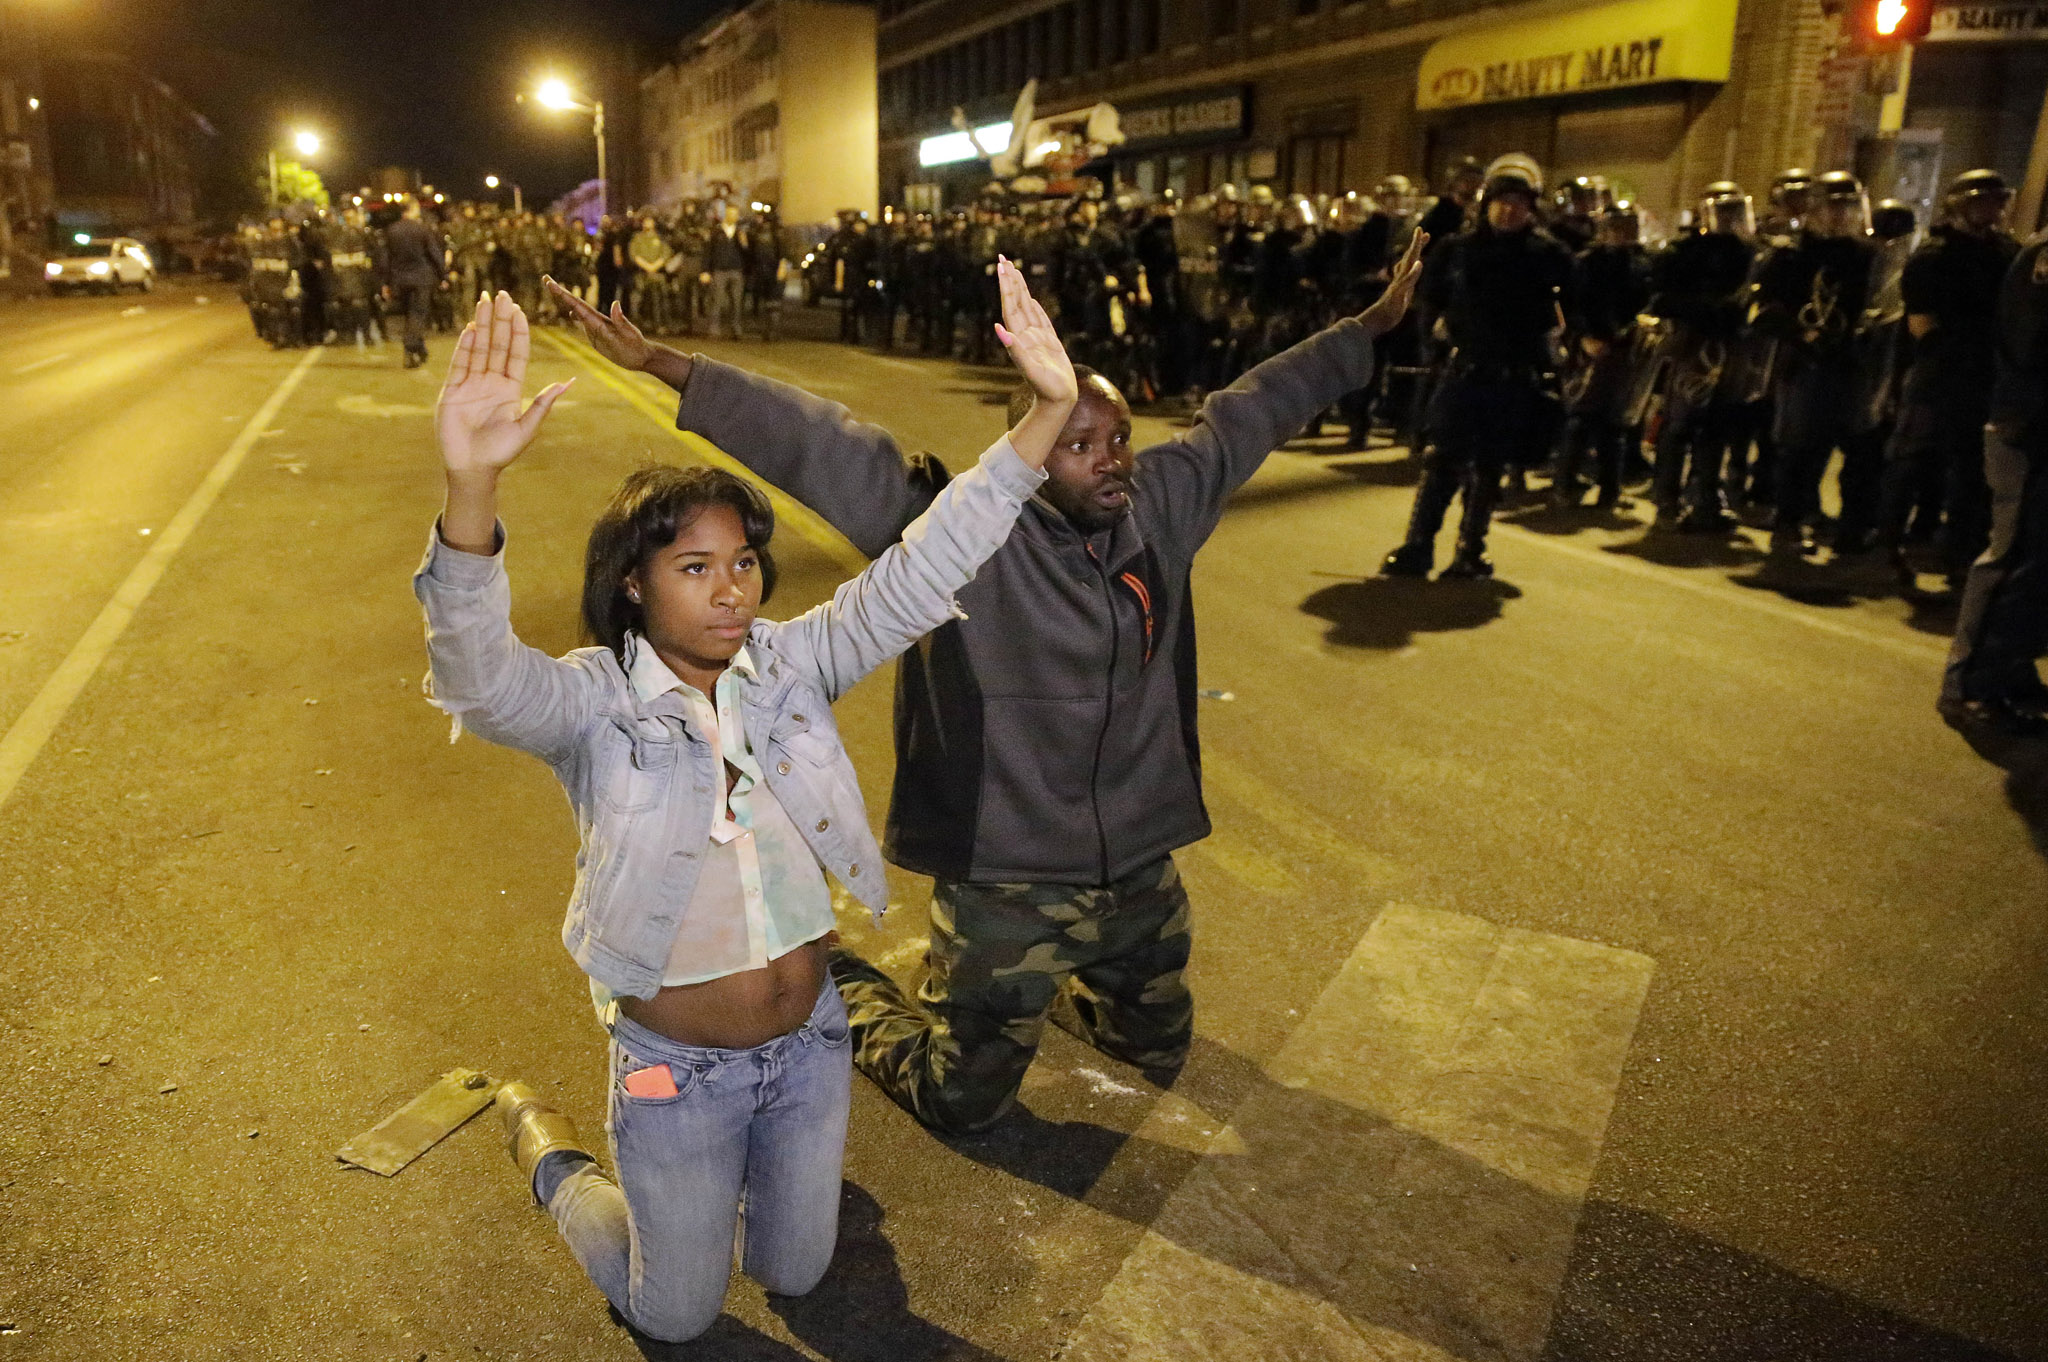 Protesters demonstrate ahead of a 10 p.m. curfew Wednesday, April 29, 2015, in Baltimore. The curfew was imposed after unrest in Baltimore over the death of Freddie Gray while in police custody. (AP Photo/Matt Rourke)